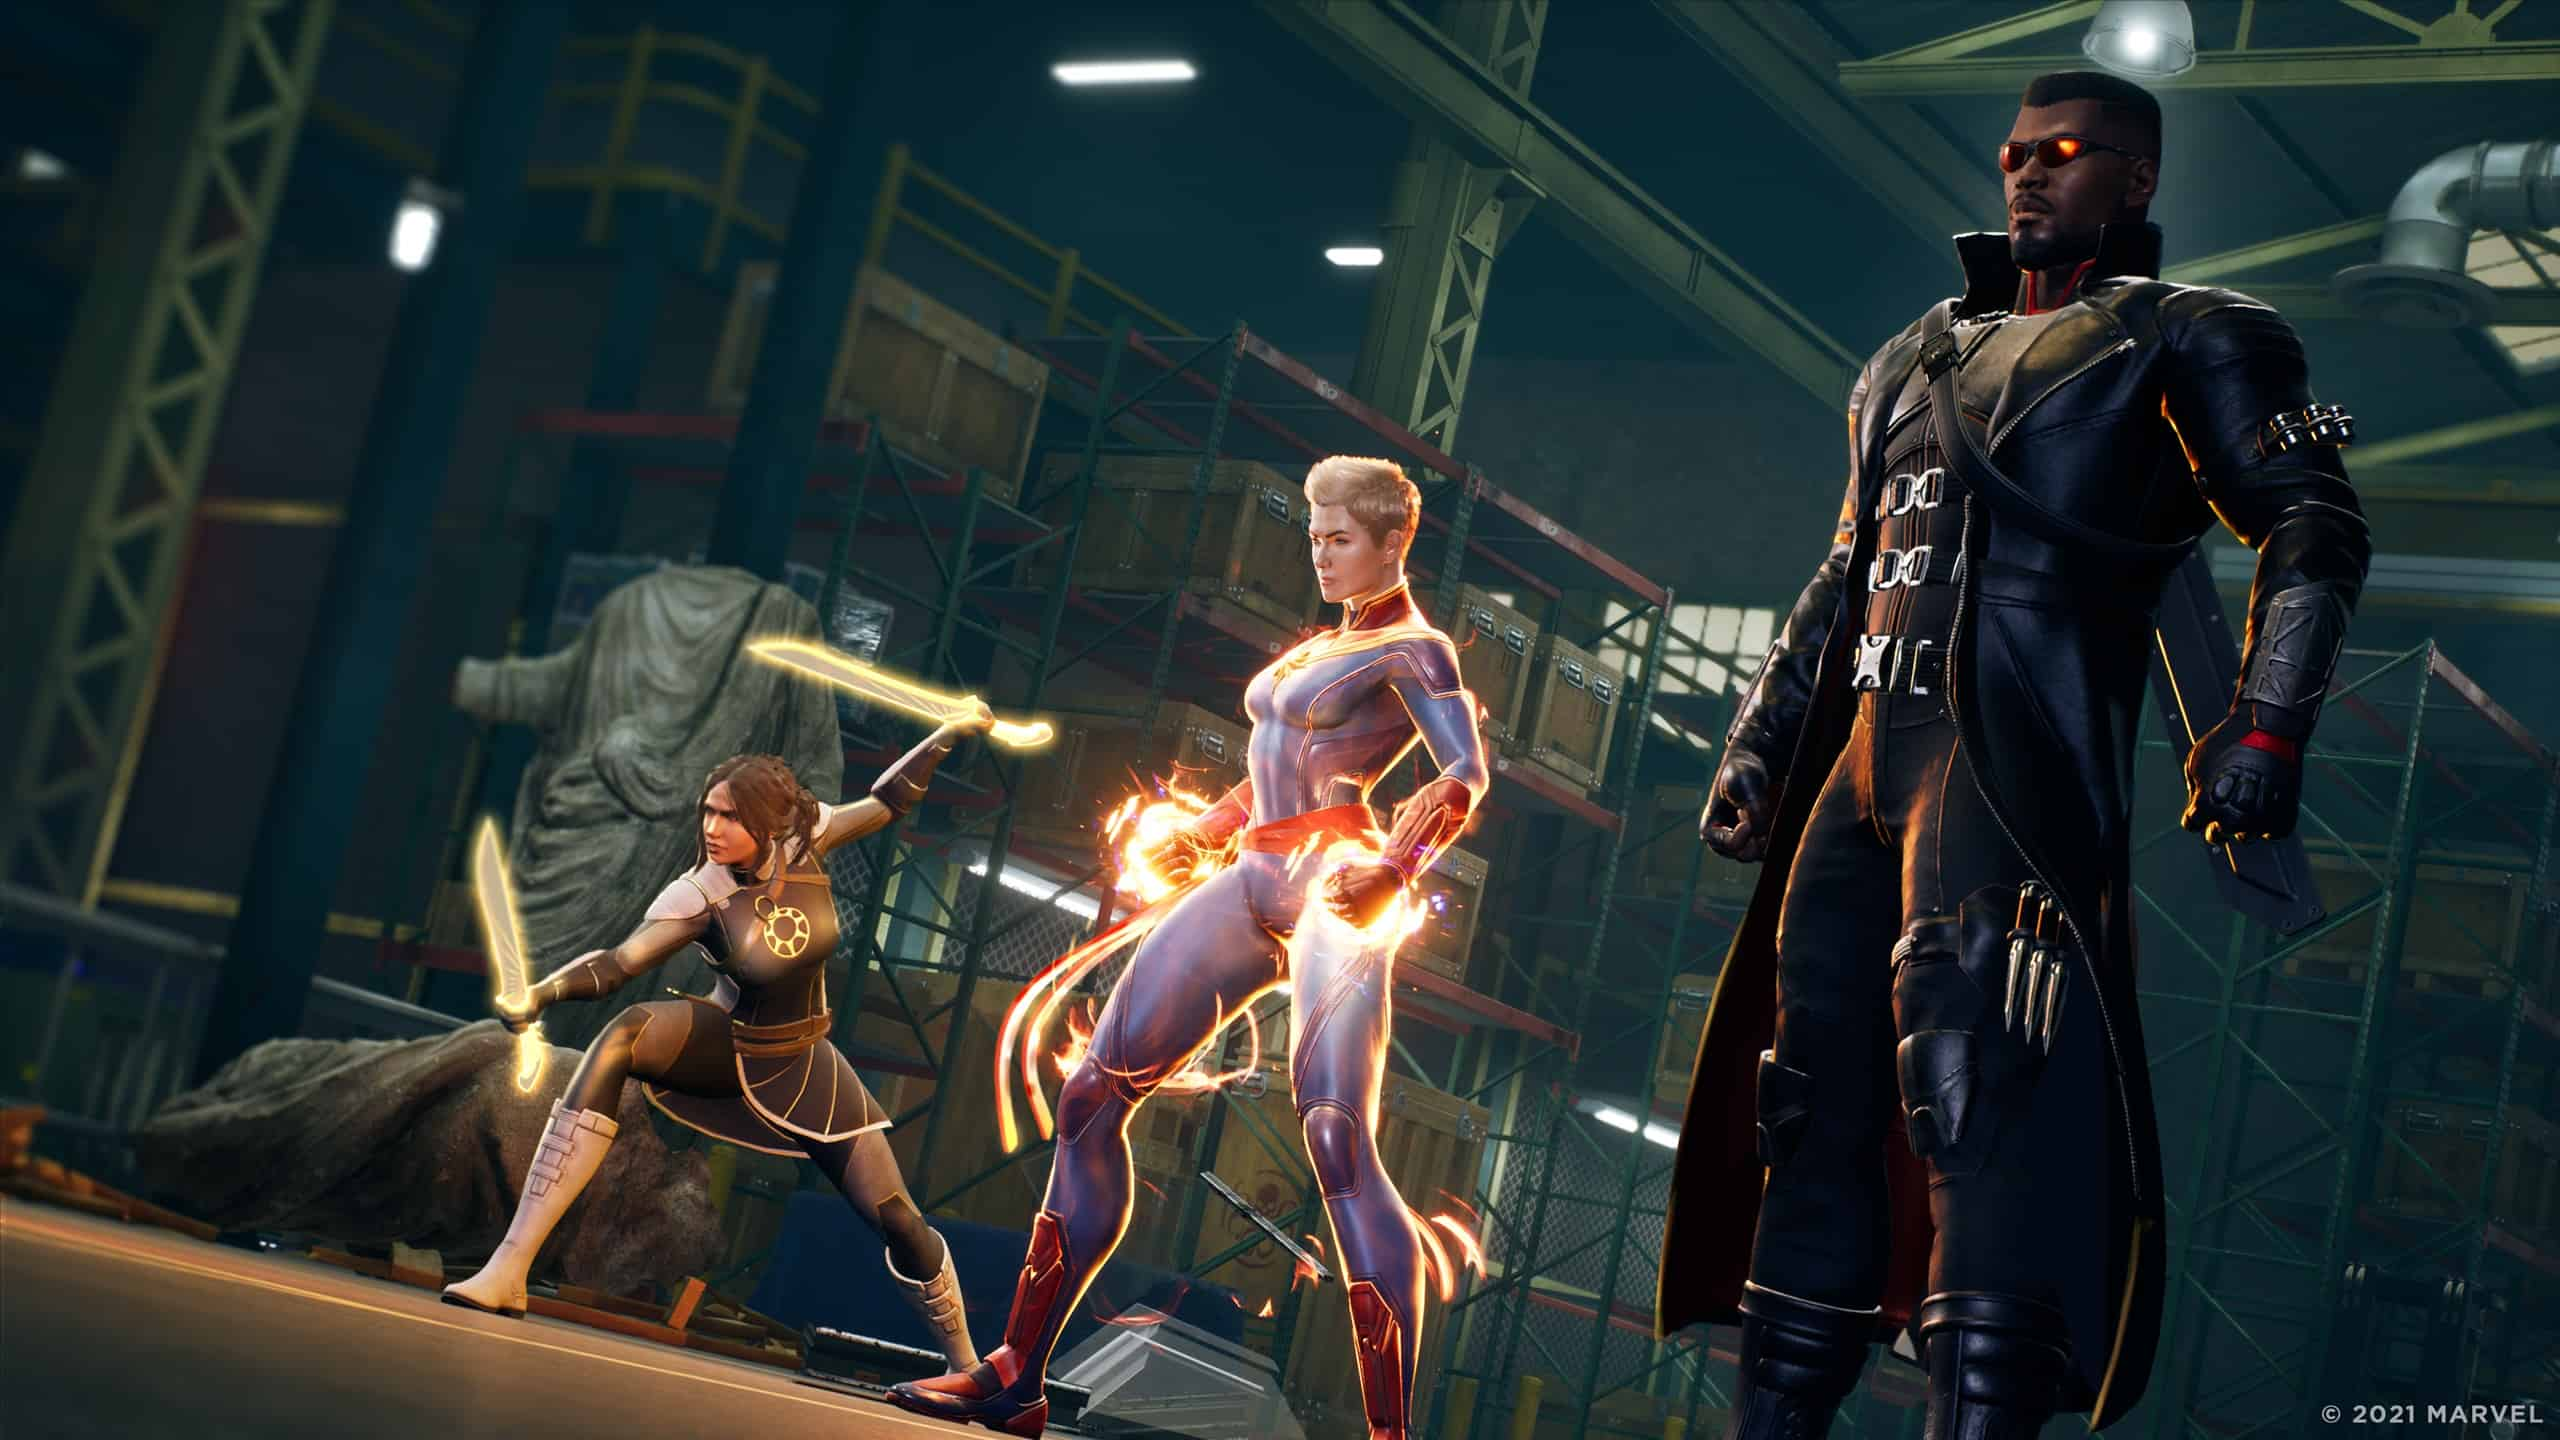 An XCOM-style game in the Marvel universe? Oh please, sign me up!